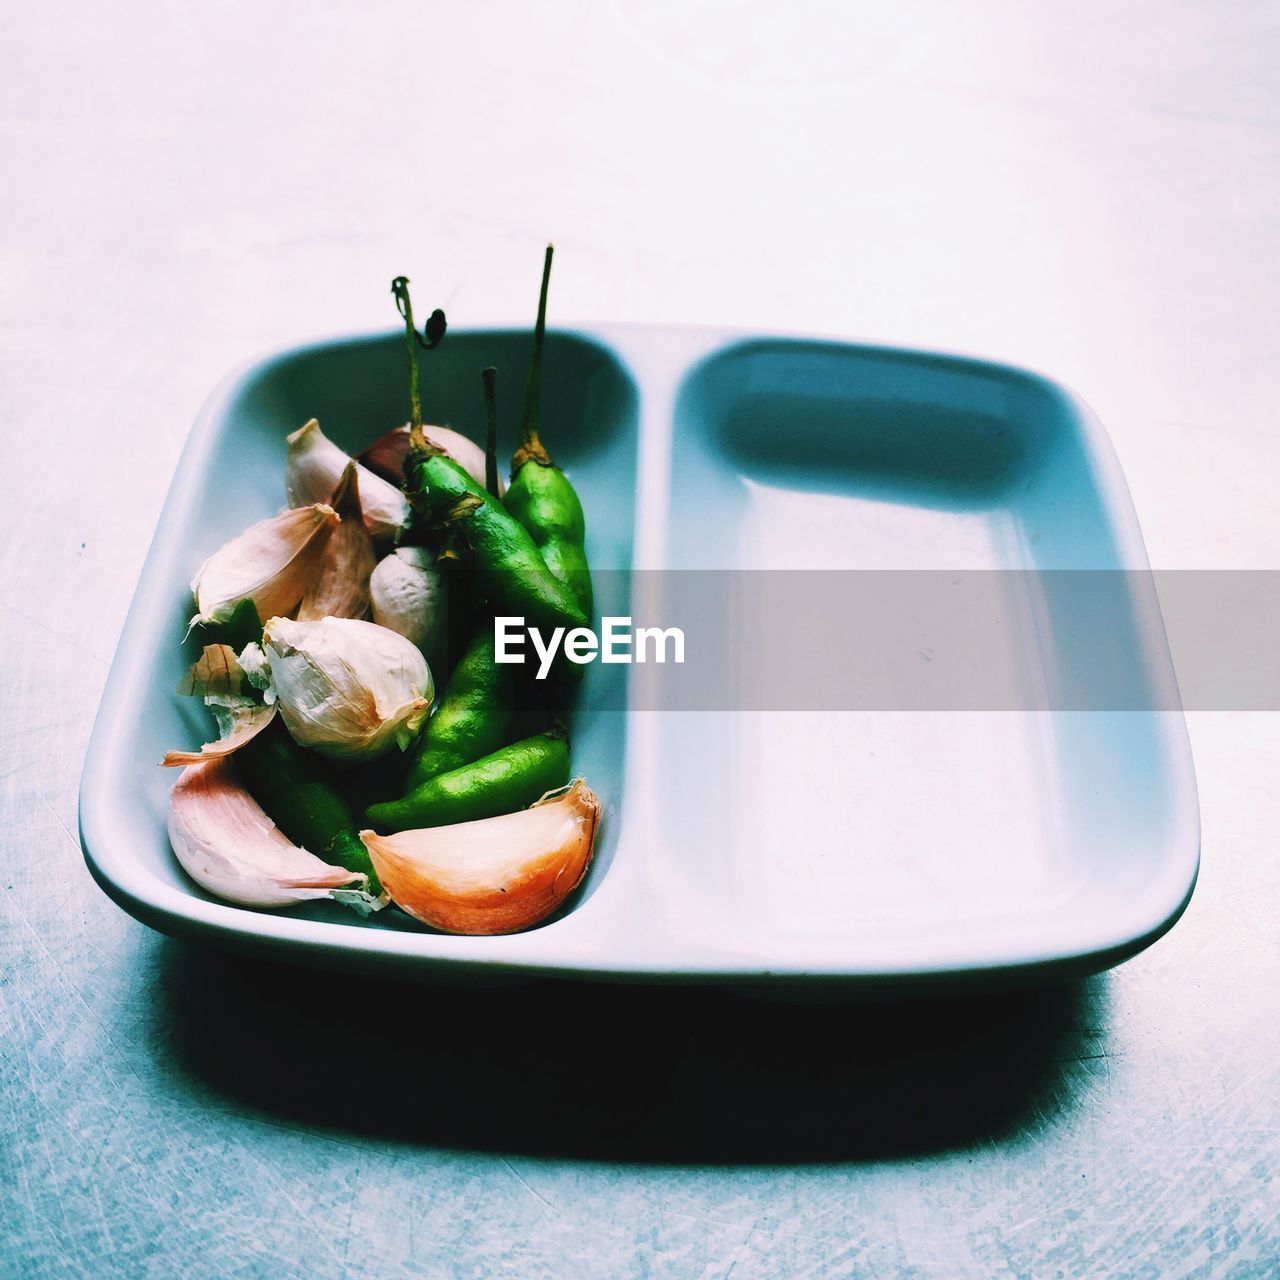 food and drink, food, still life, table, freshness, indoors, ready-to-eat, healthy eating, plate, close-up, no people, wellbeing, high angle view, seafood, vegetable, serving size, bowl, tray, focus on foreground, selective focus, japanese food, temptation